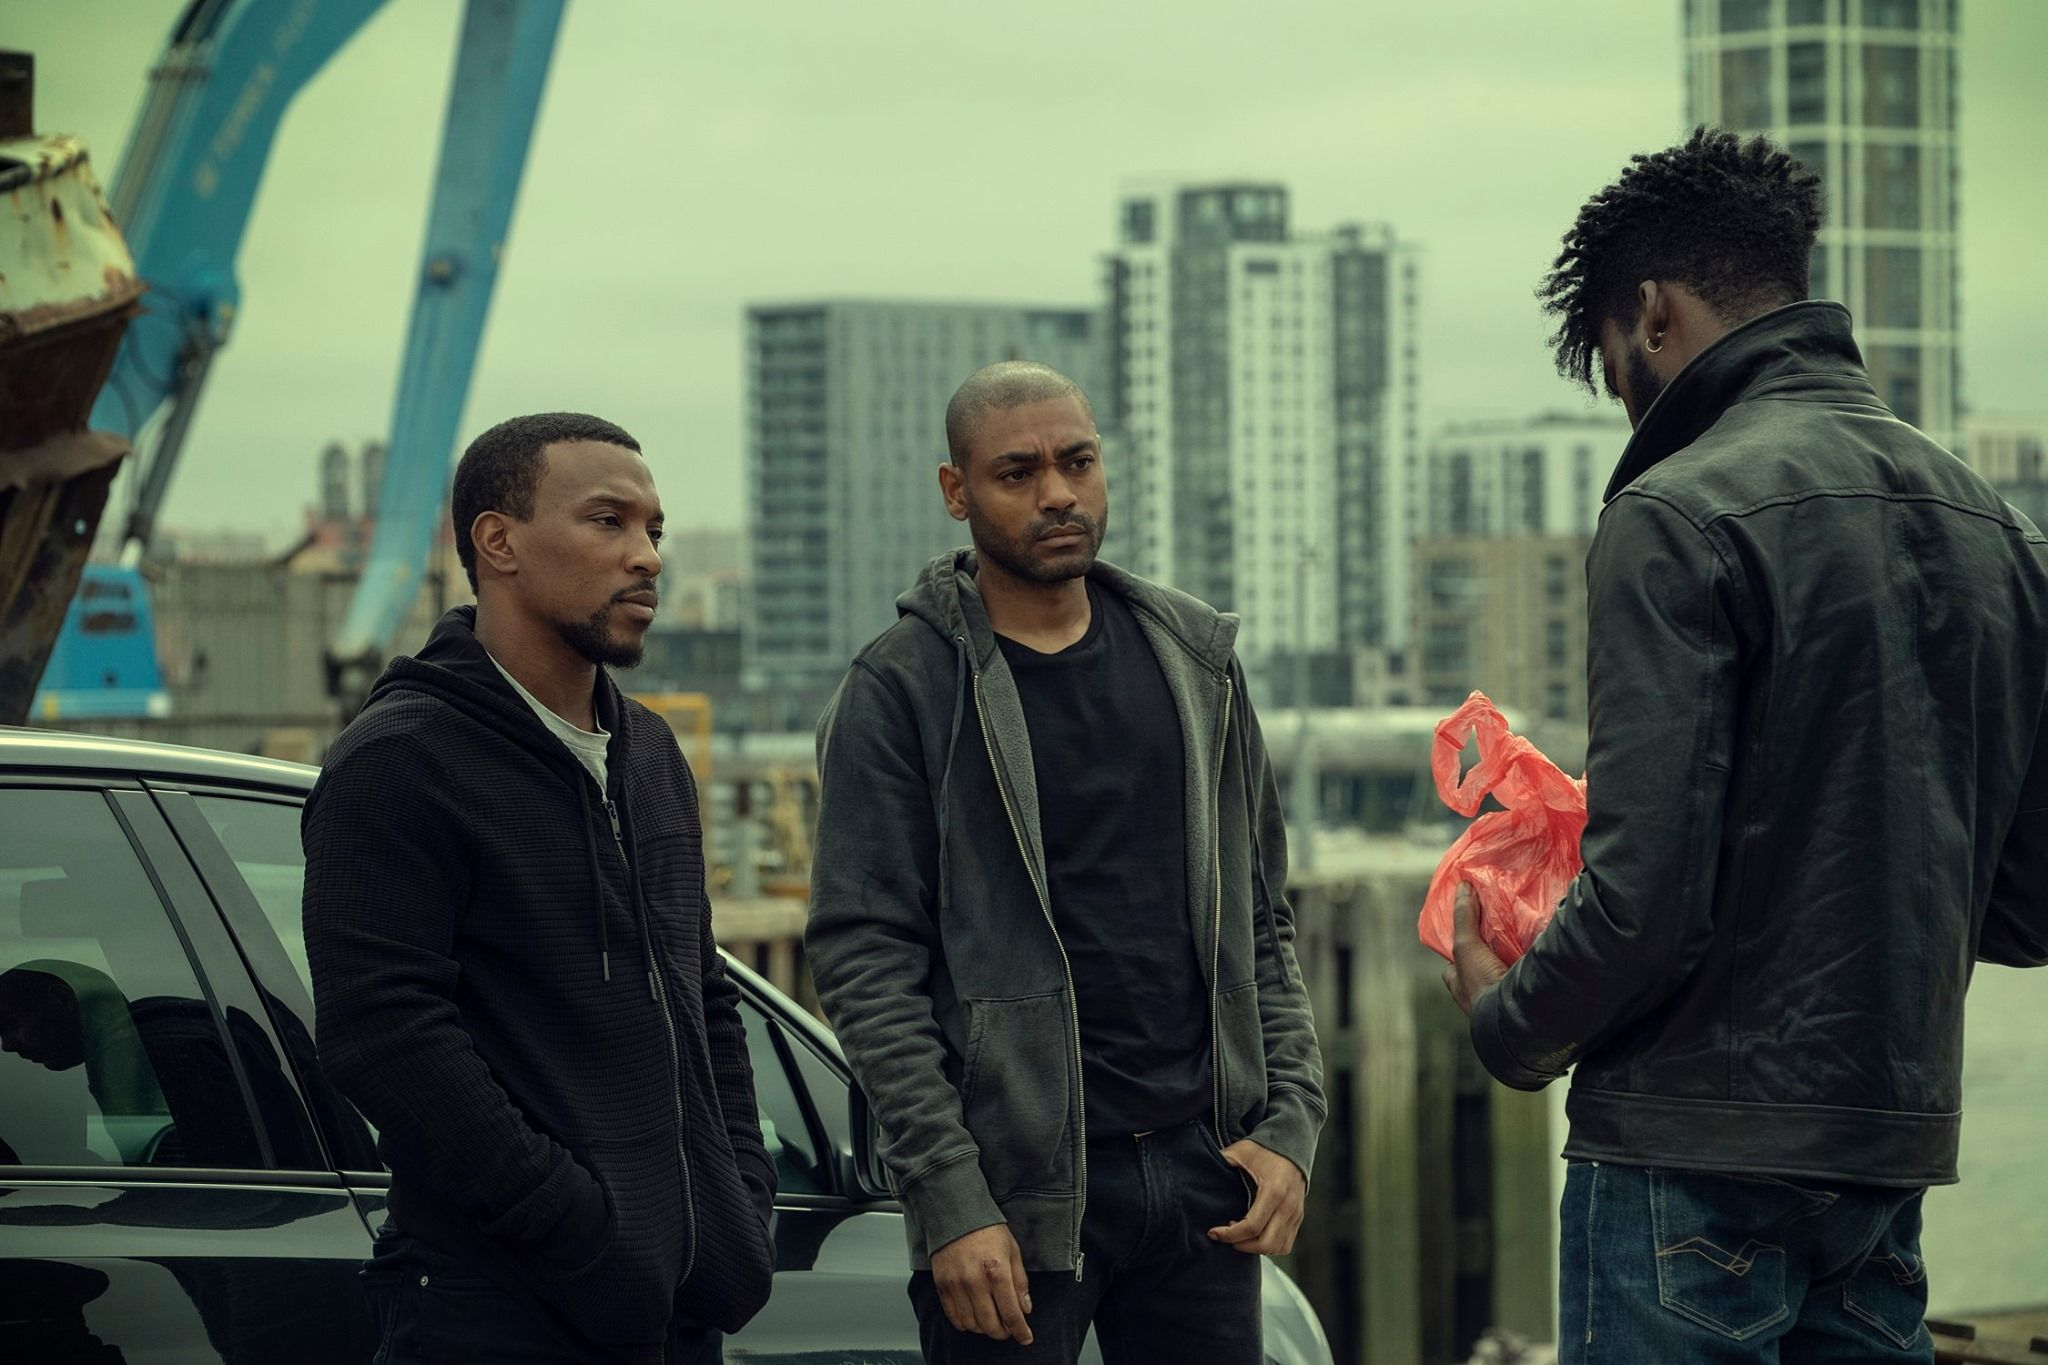 Image may contain: Top Boy, Top Boy season 3, new series, series three, Netflix, Drake, London, new, drama, cast, trailer, release date, Pedestrian, Suit, Man, Hair, Overcoat, Pants, Person, Human, Coat, Jacket, Clothing, Apparel